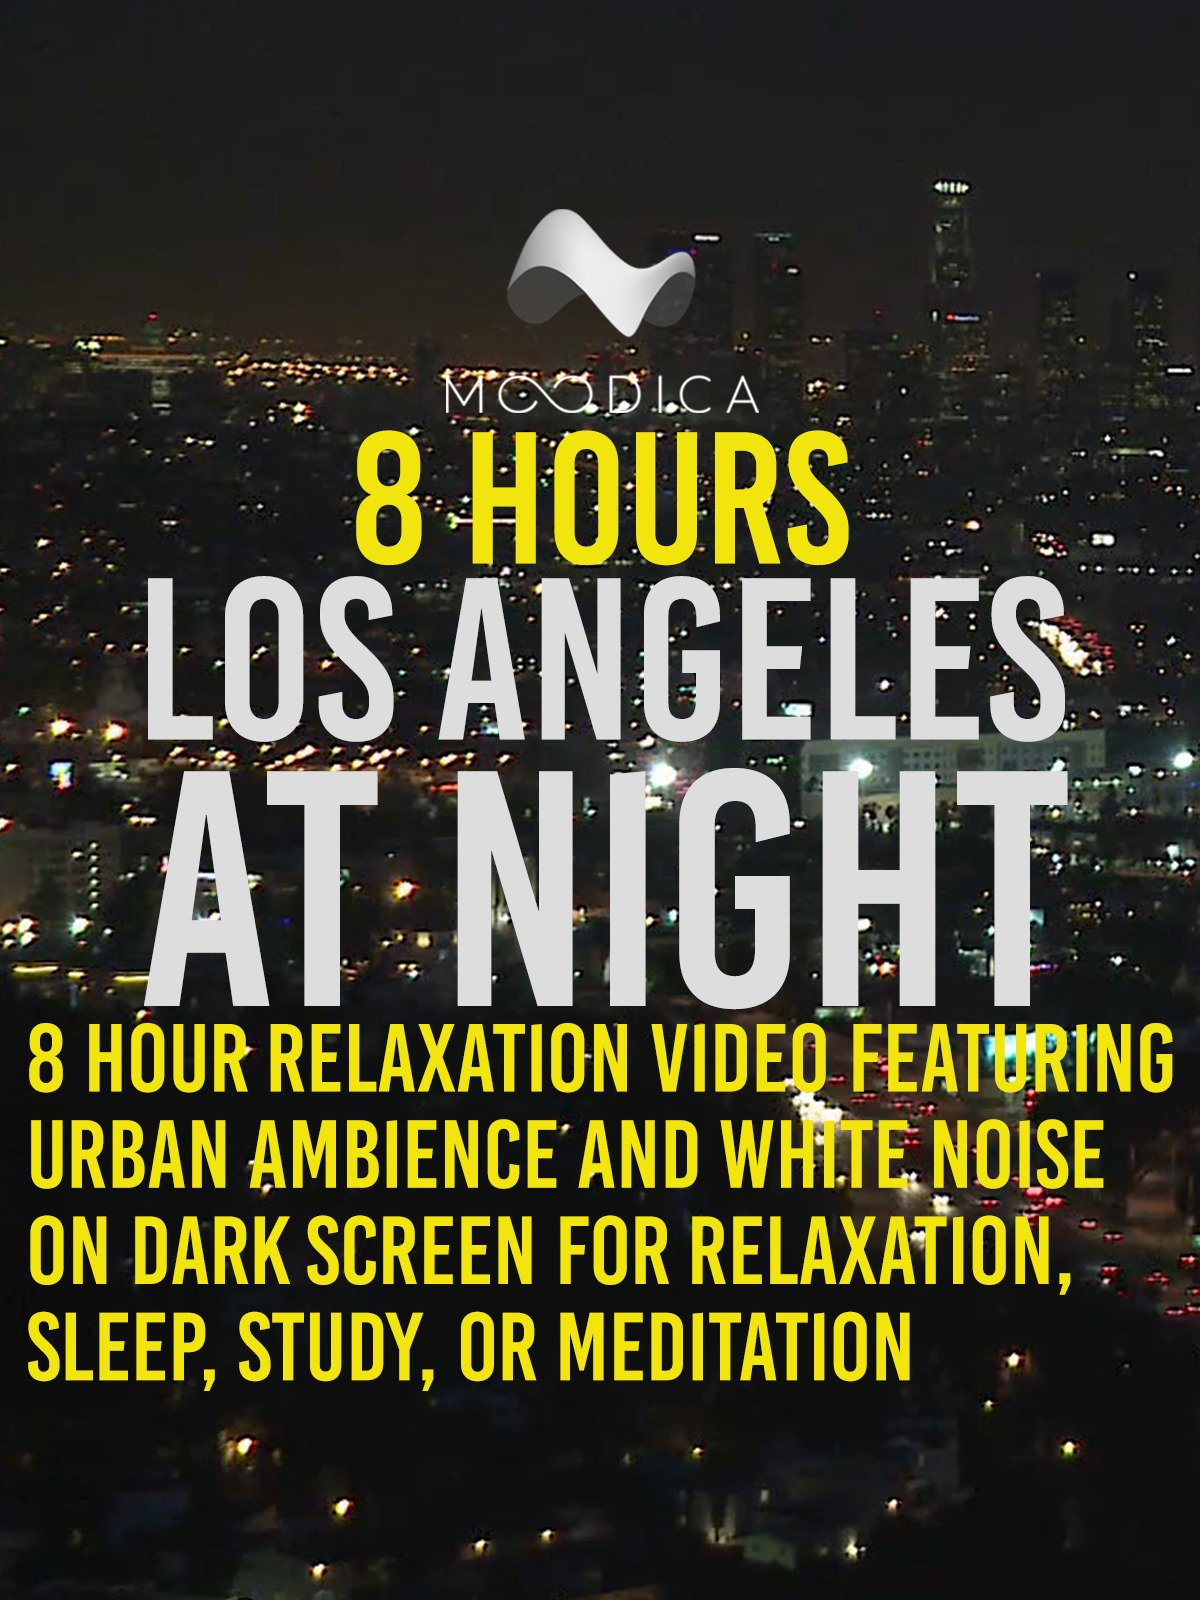 8 Hours: Los Angeles At Night: Relaxation Video Featuring Urban Ambience and White Noise on Dark Screen for Relaxation, Sleep, Study, or Meditation